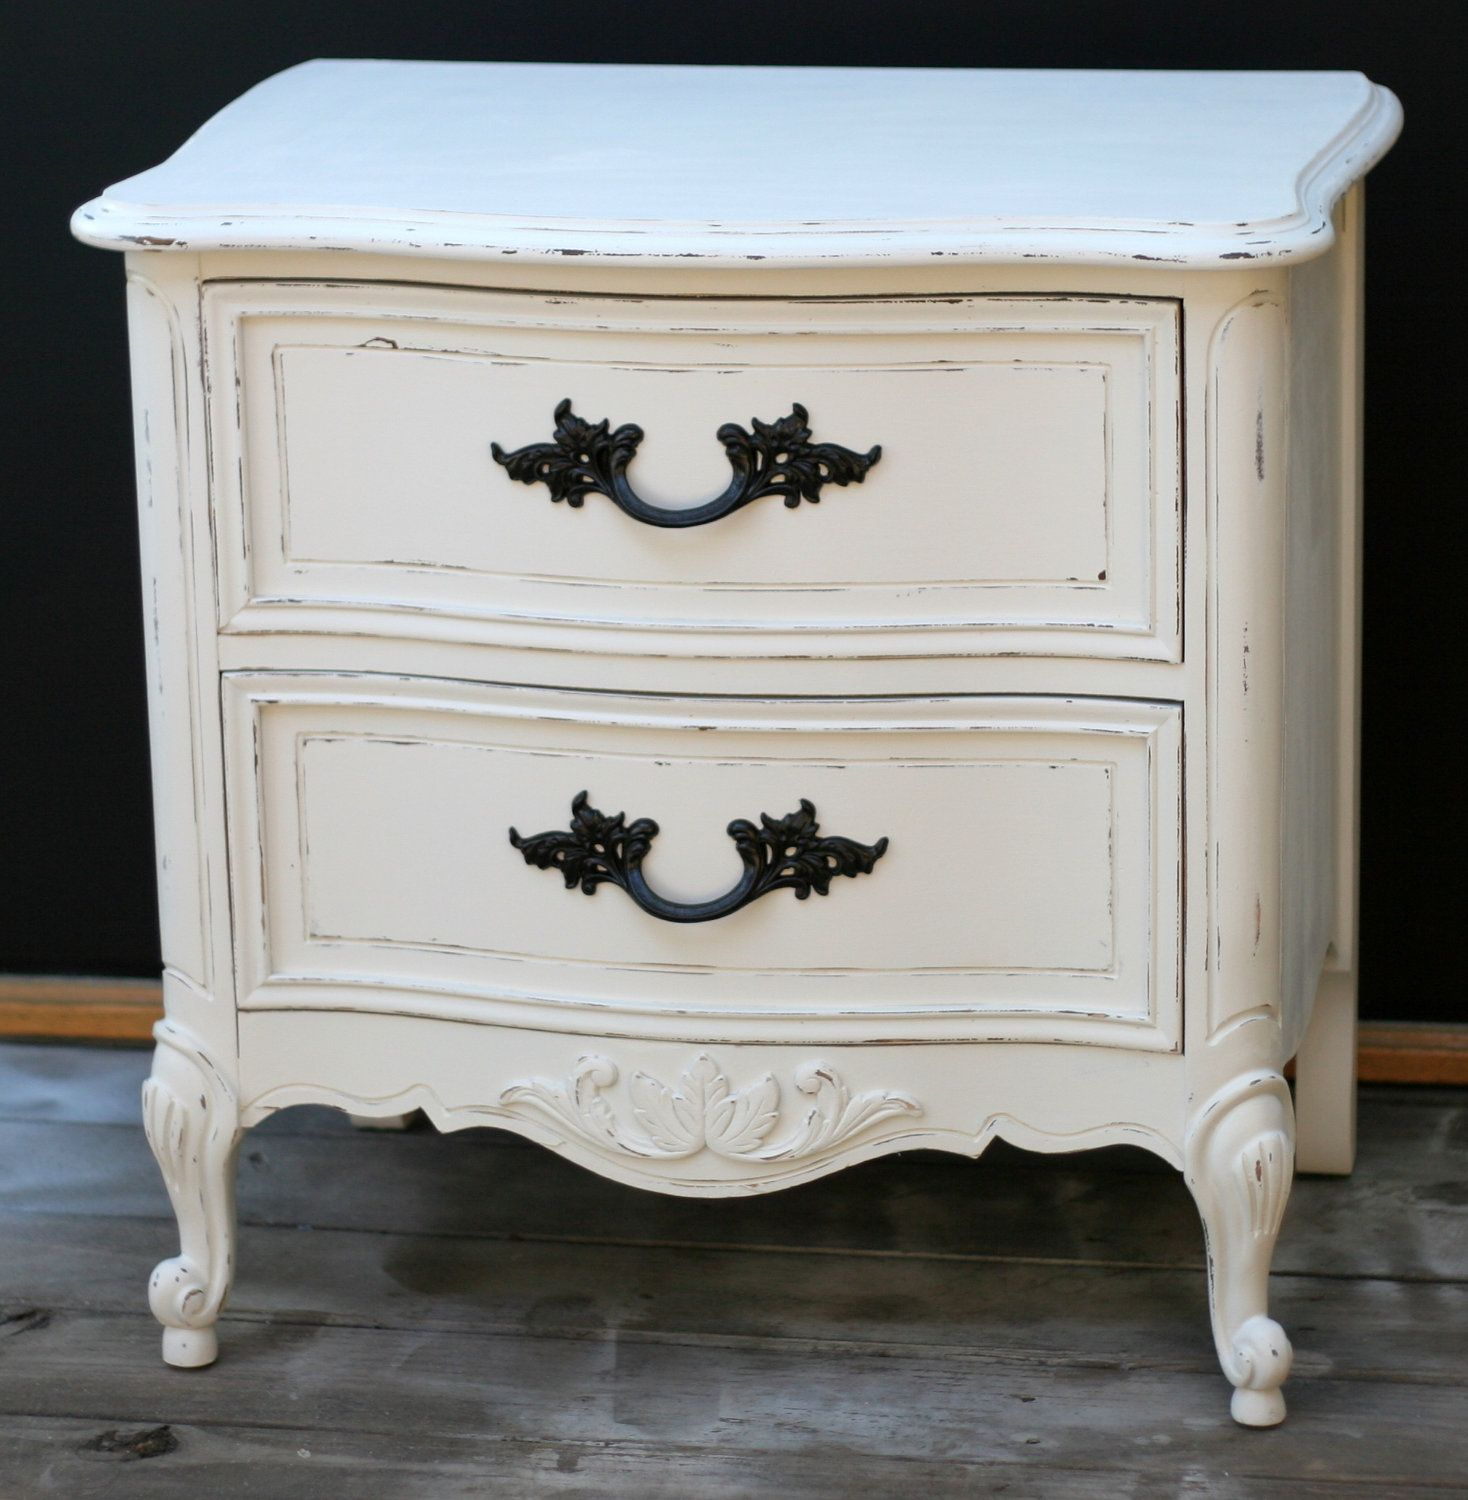 Second Hand Shabby Chic Bedroom Furniture Shabby Chic Nightstand French Provincial Distressed Vintage White